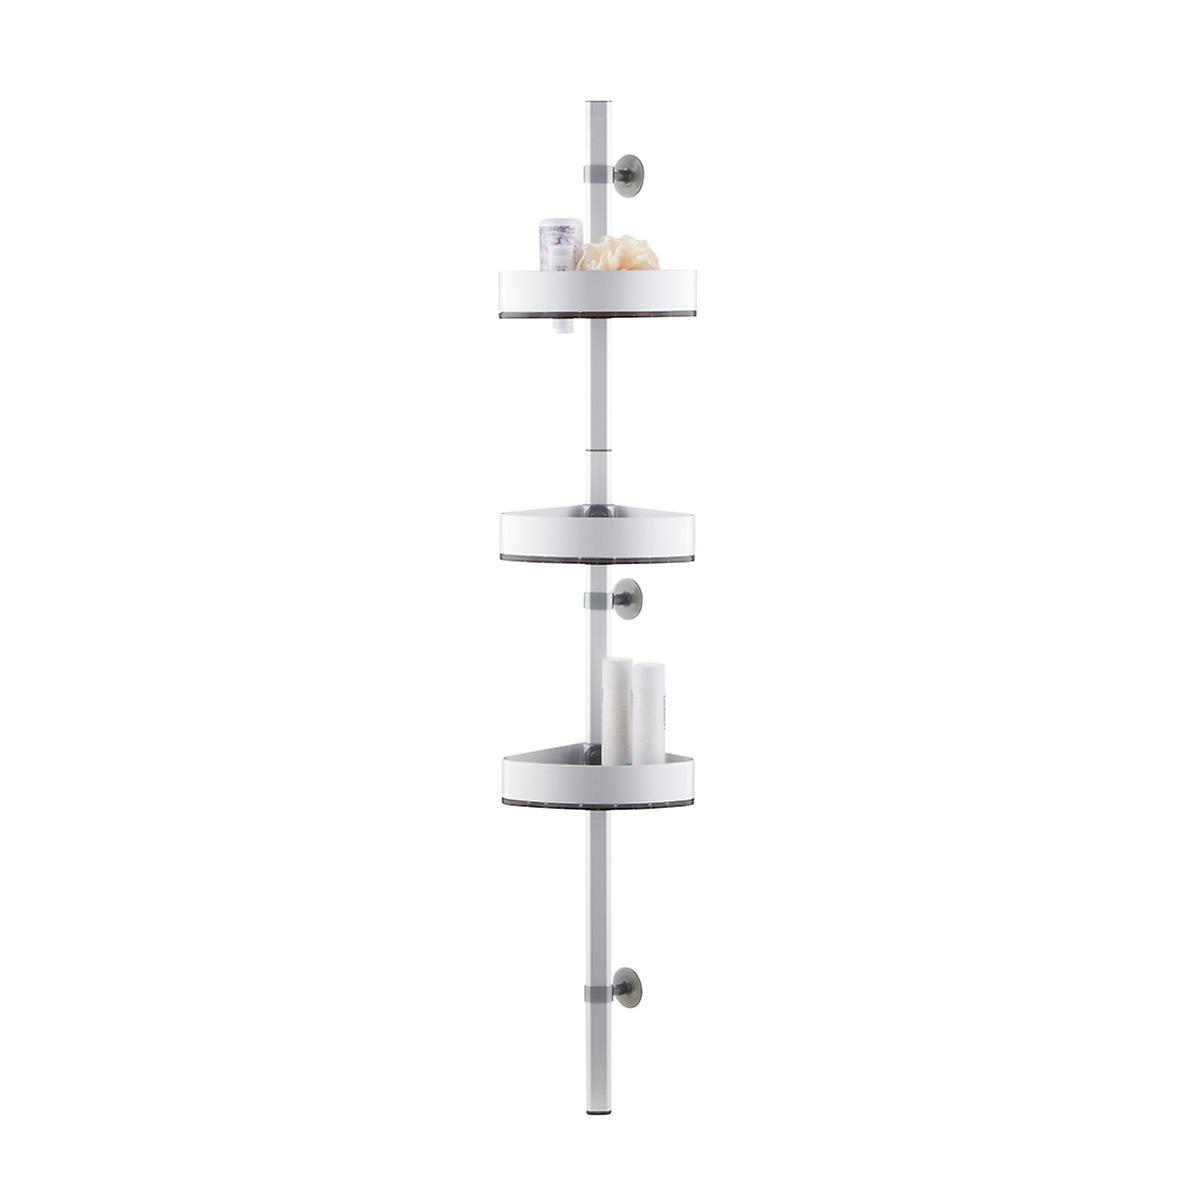 InterDesign Affixx Adjustable Aluminum Shower Station